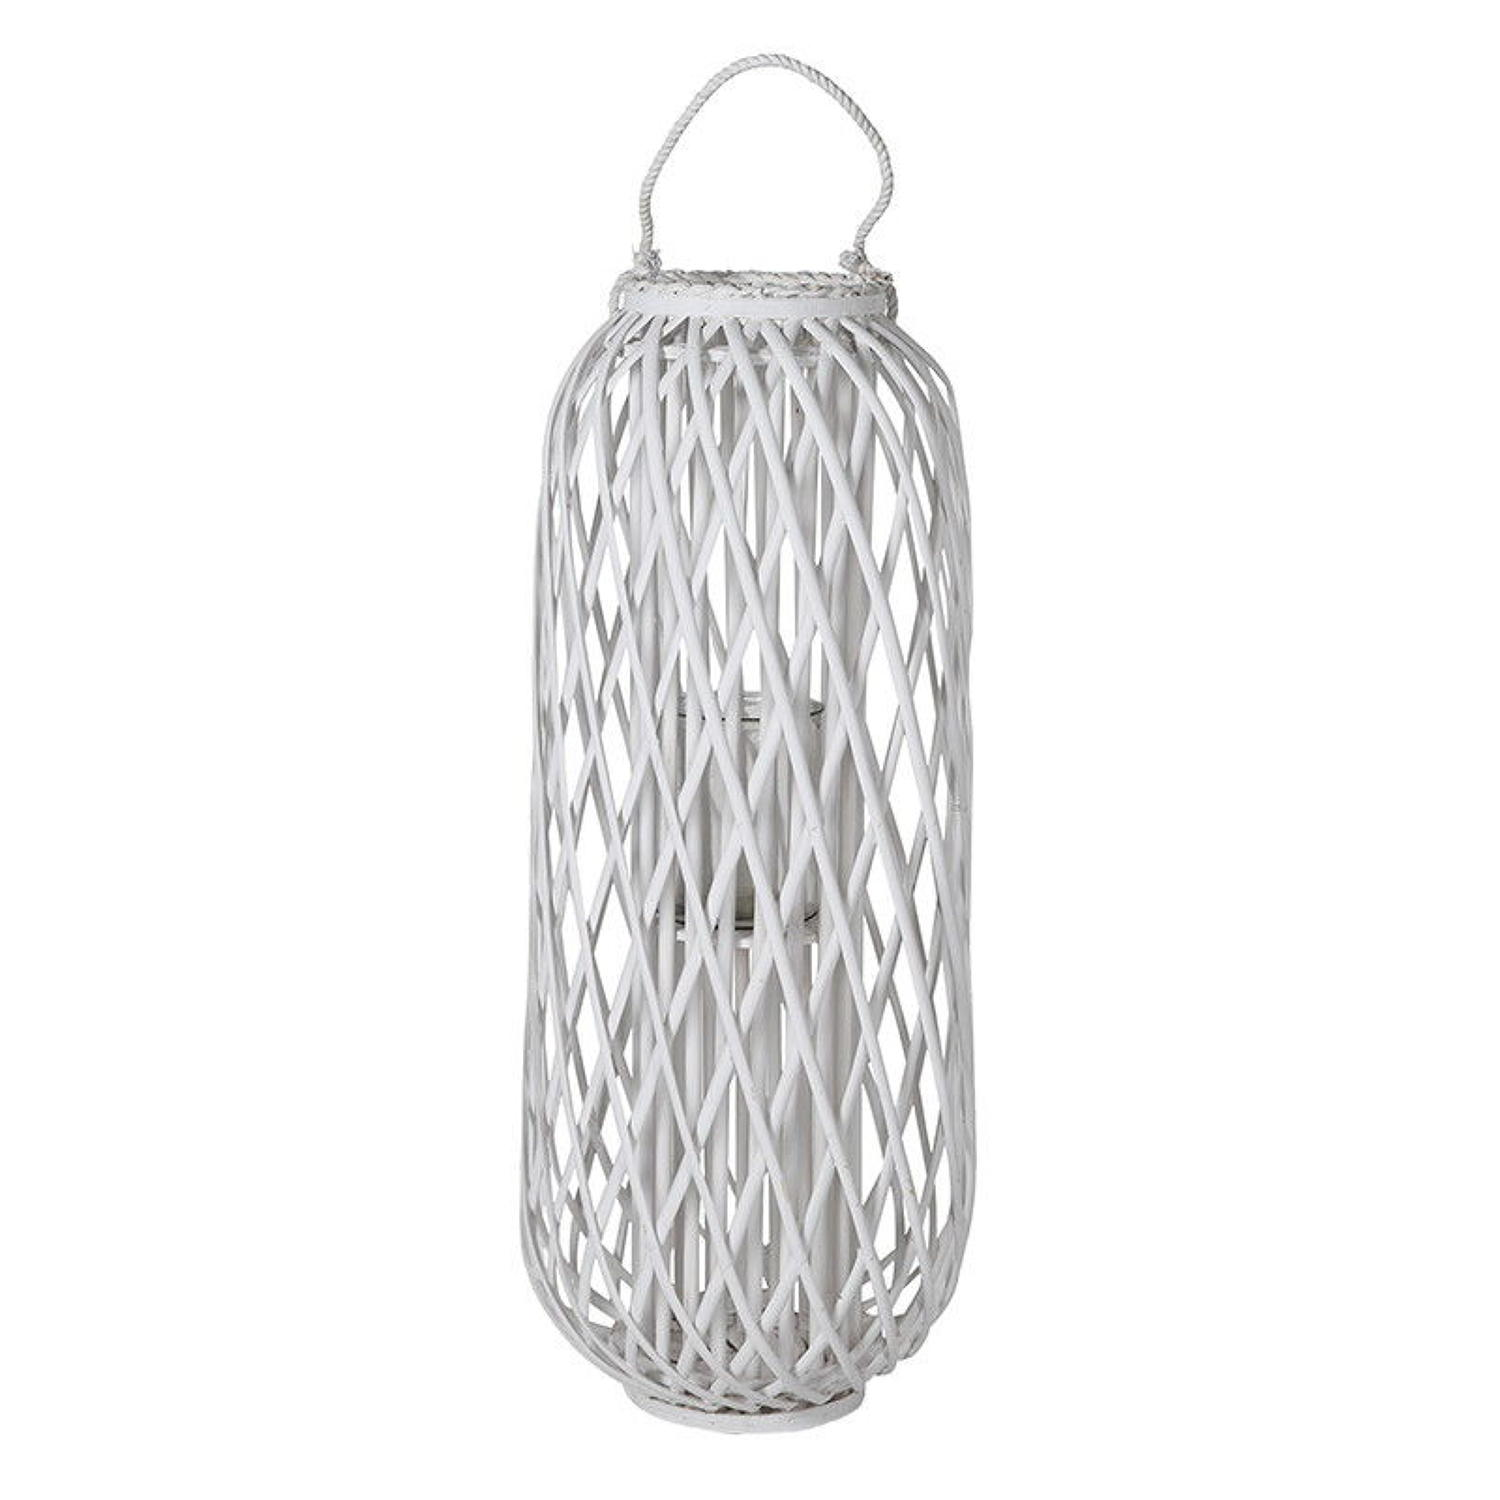 Large willow hurricane candle lantern in white